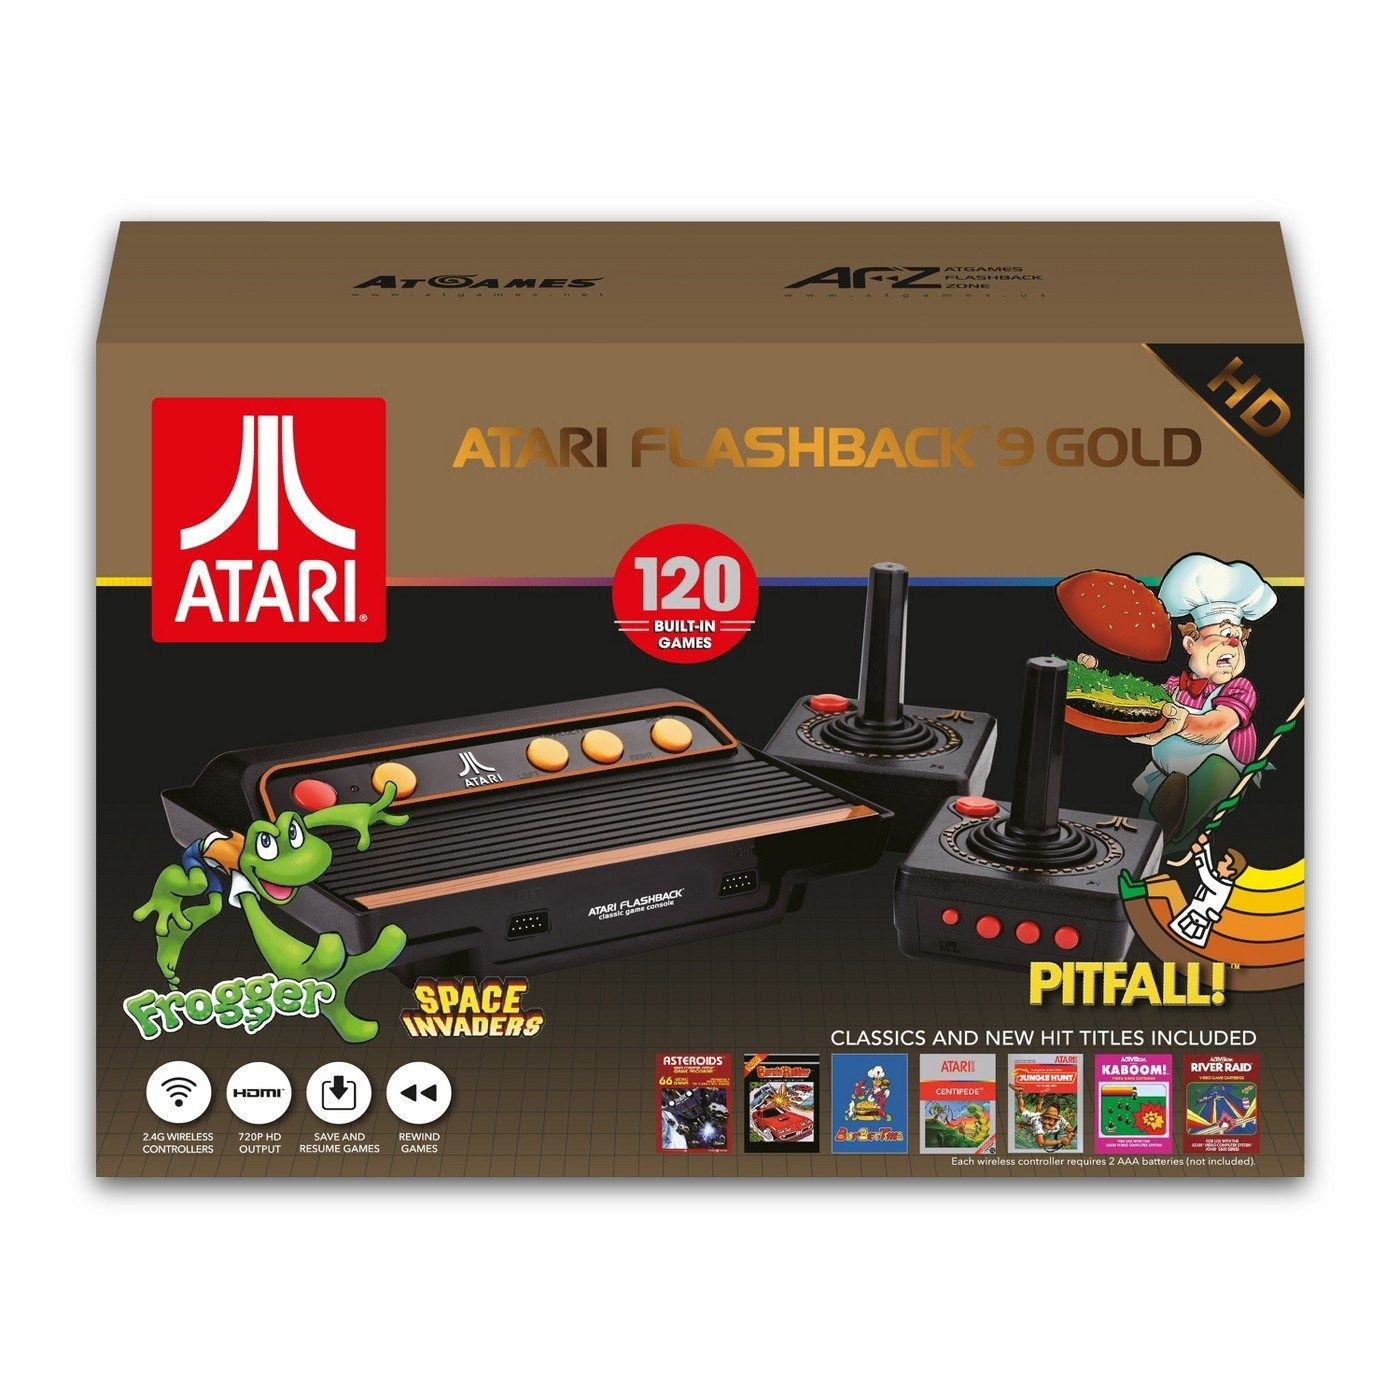 The Official Game List For The Atgames Atari Flashback 9